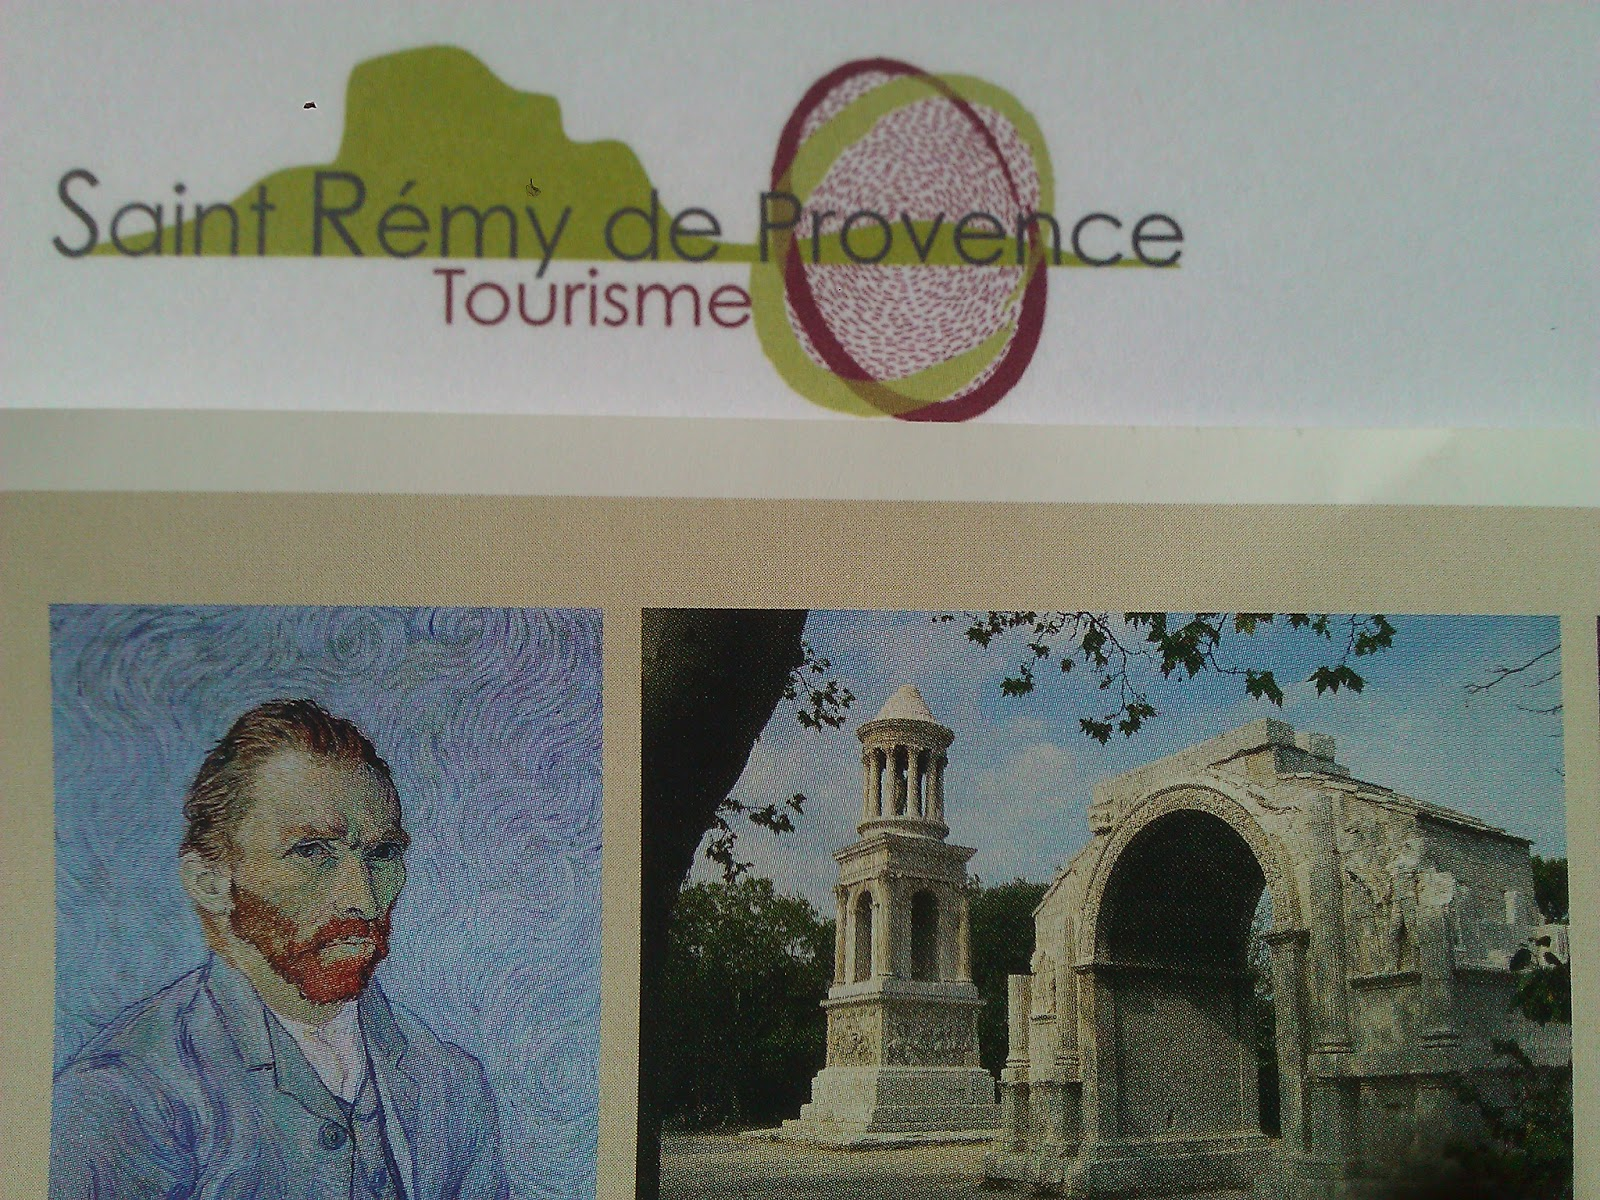 Saint remy de provence and around the saint remy tourist - Office de tourisme de saint remy de provence ...